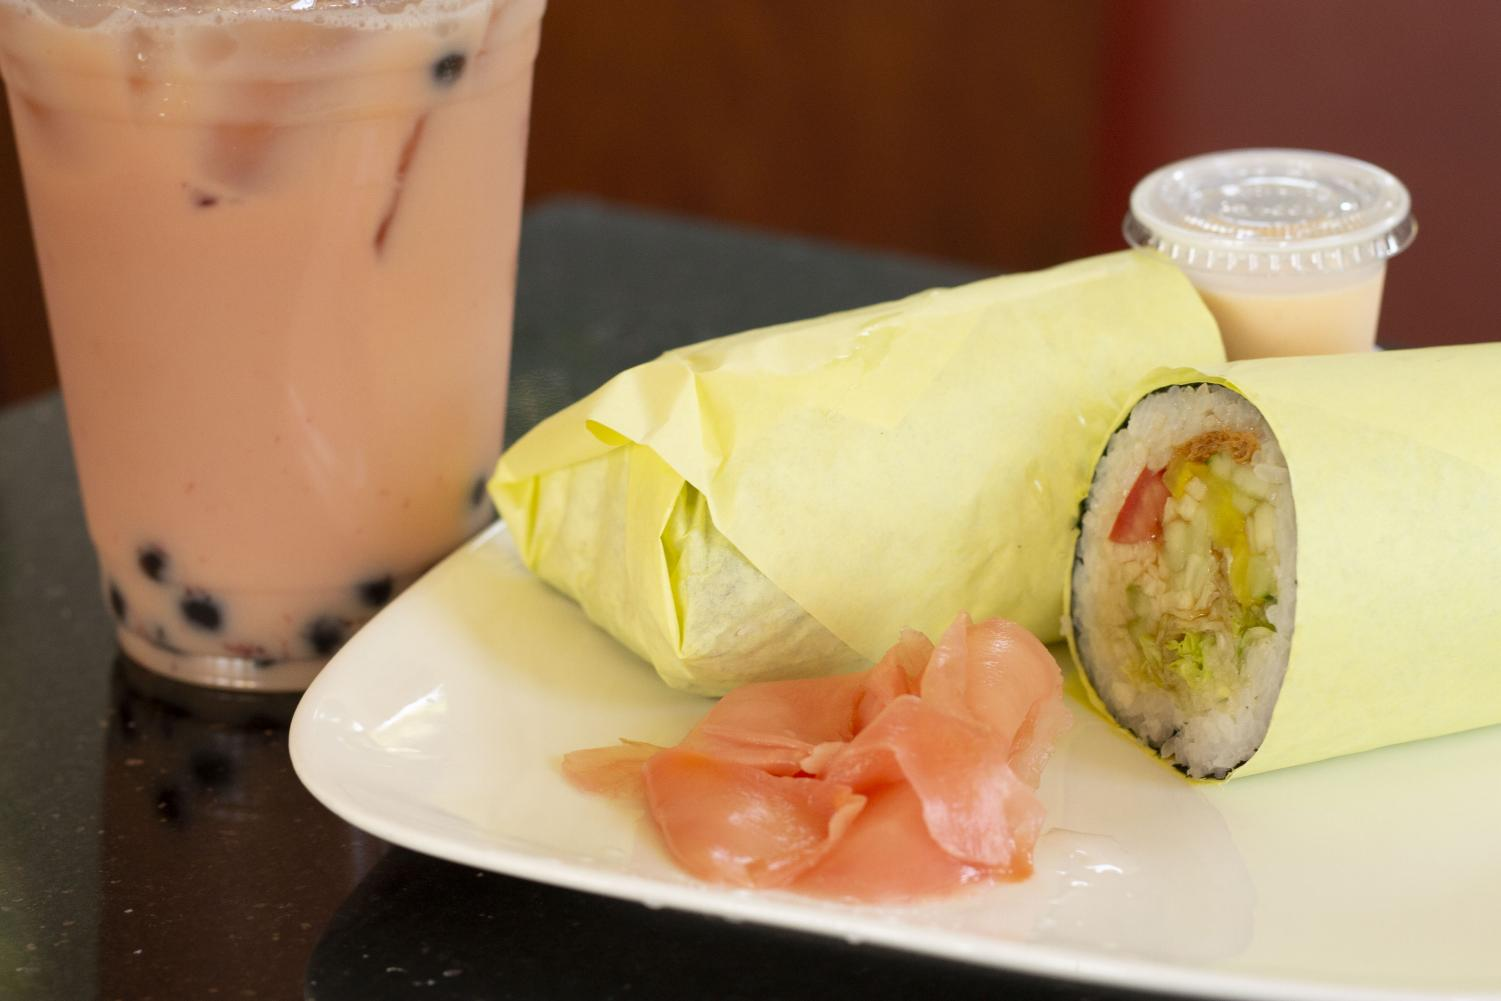 A sushi burrito comes with spicy mayo, wasabi cream, and pickled ginger. Enjoy a strawberry milk tea with boba as well. Photo credit: Dominique Wood